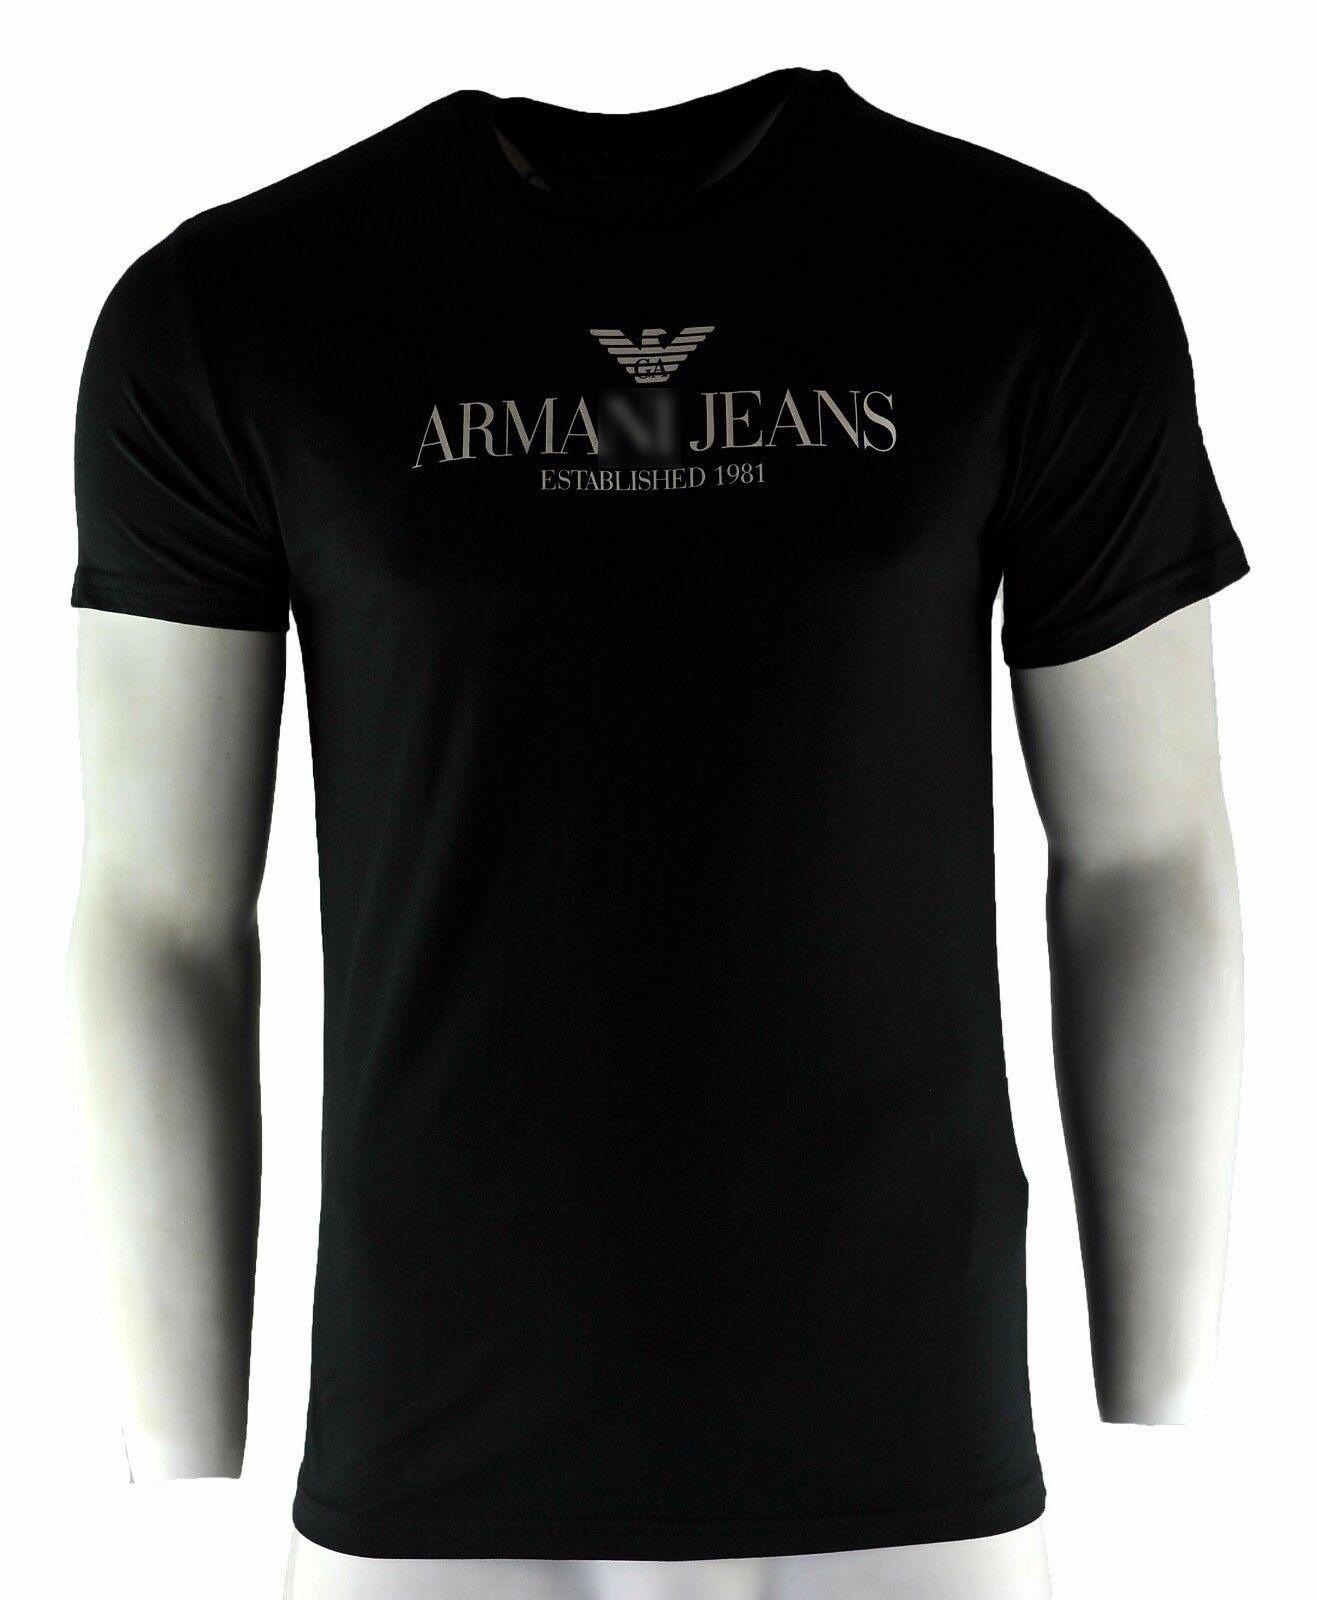 Armany Jeans T-Shirt Black Fashion Crew Neck Size S -3XL Mens Womens Tee Hoodie Free Shipping